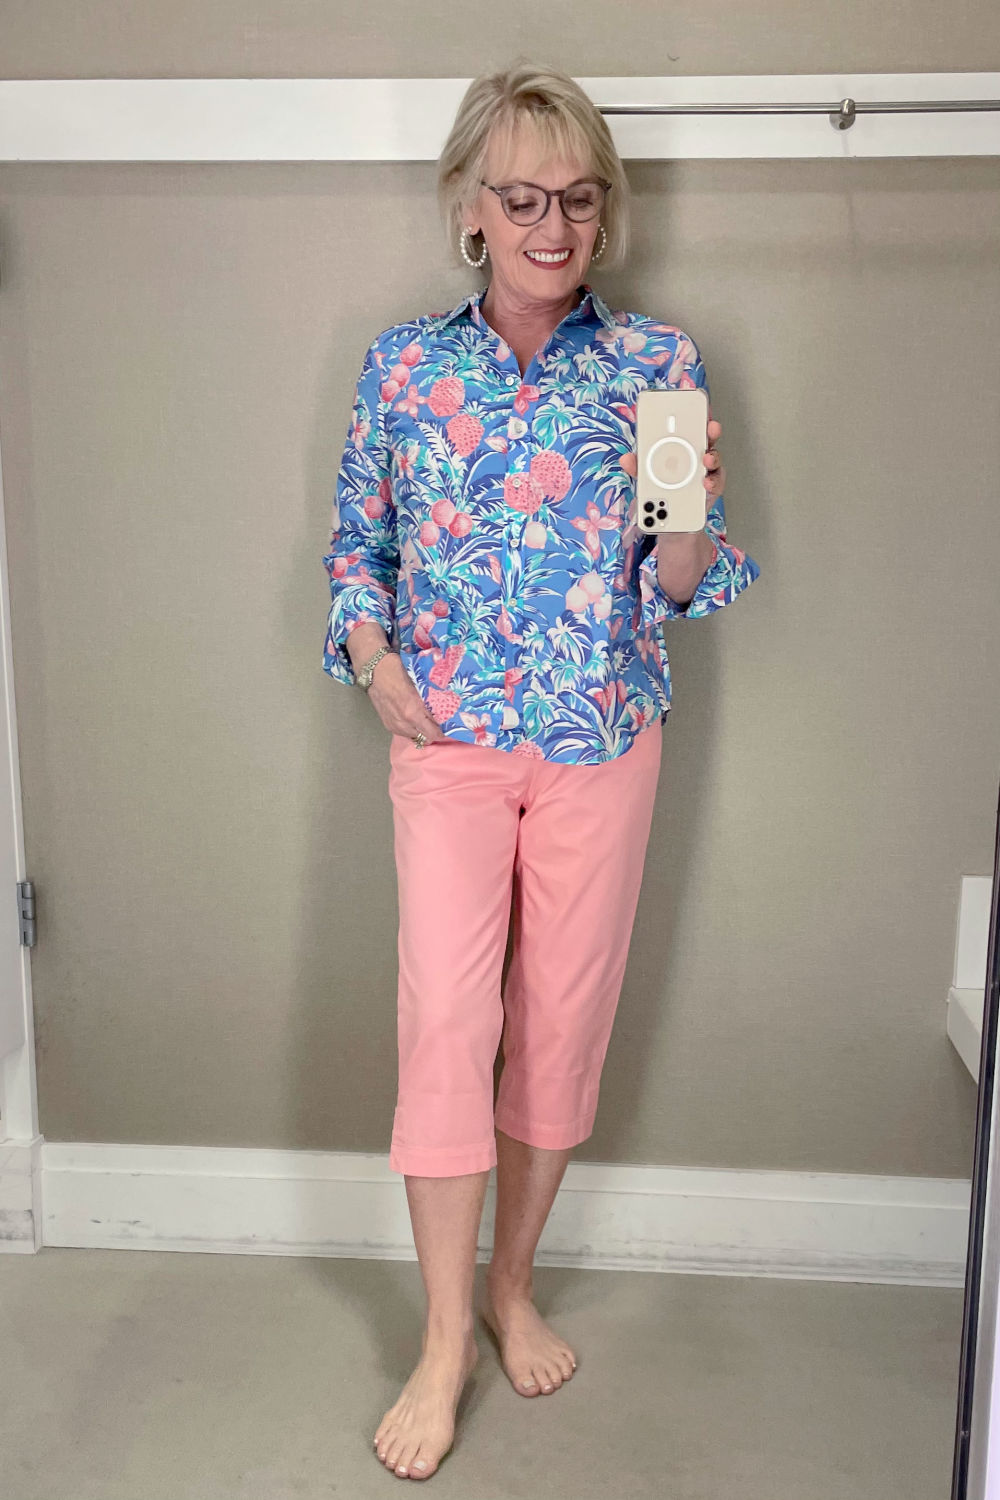 blonde woman talking selfie in dressing room mirror wearoing floral shirt and pink chinos